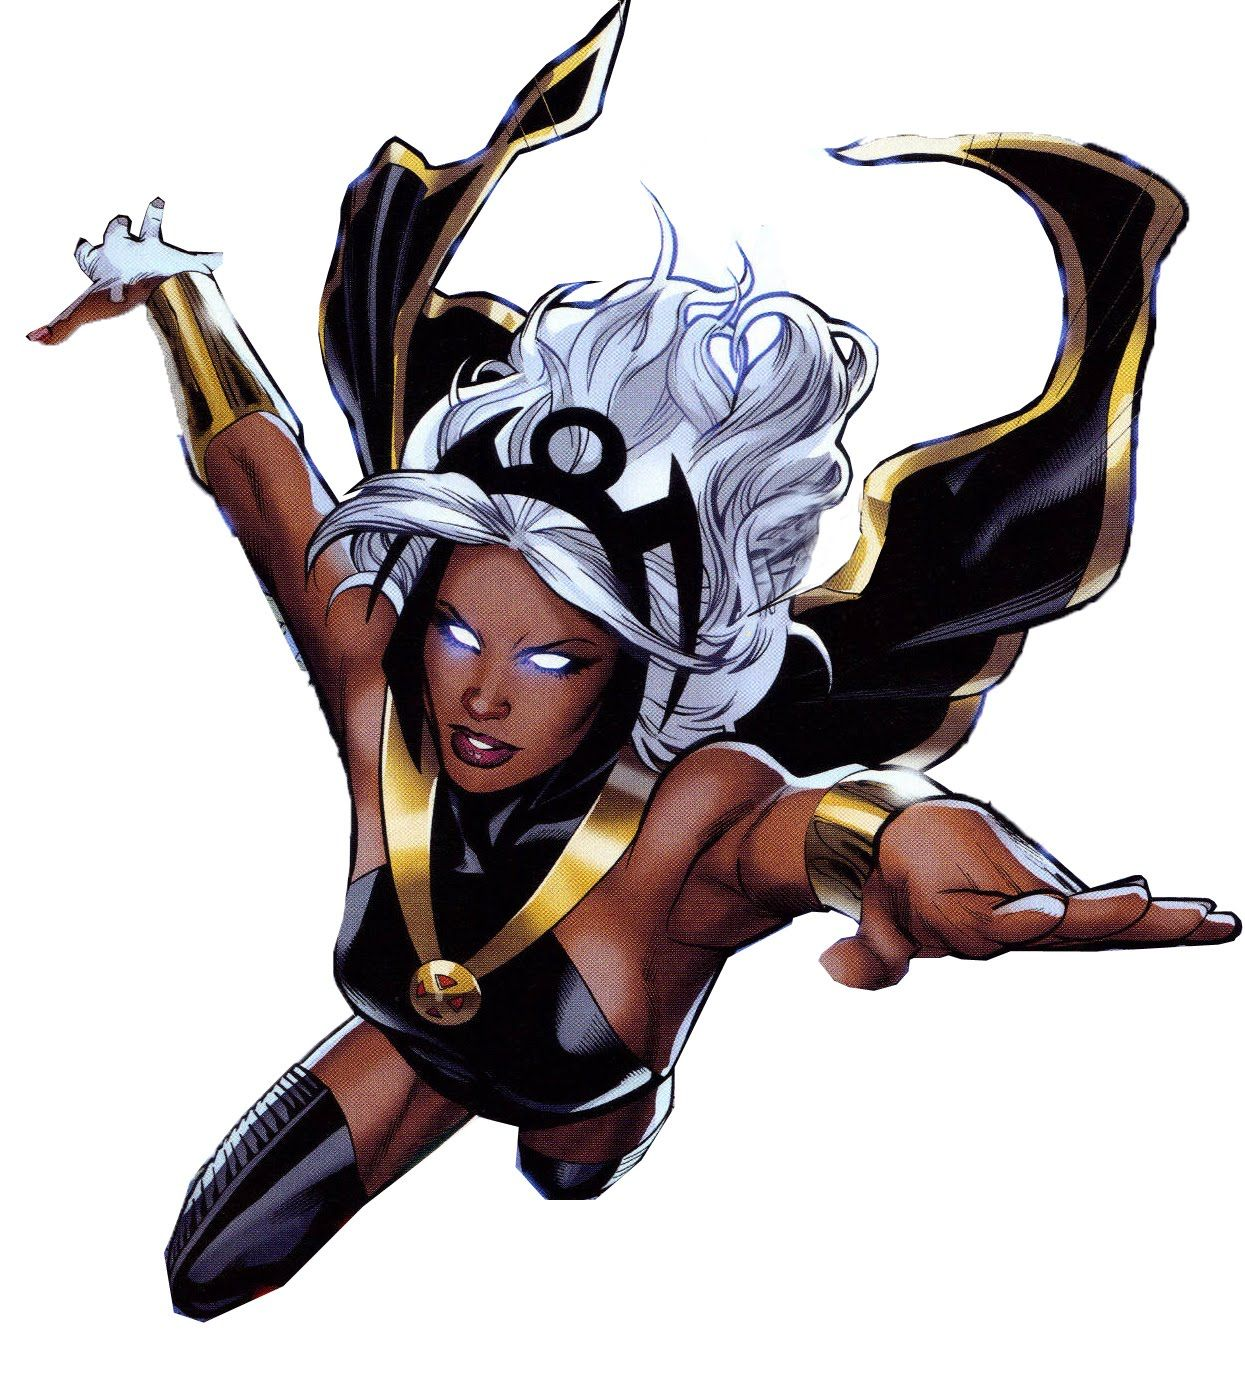 X-Men Storm Comic Vine | Storm | Super hero and Super villan